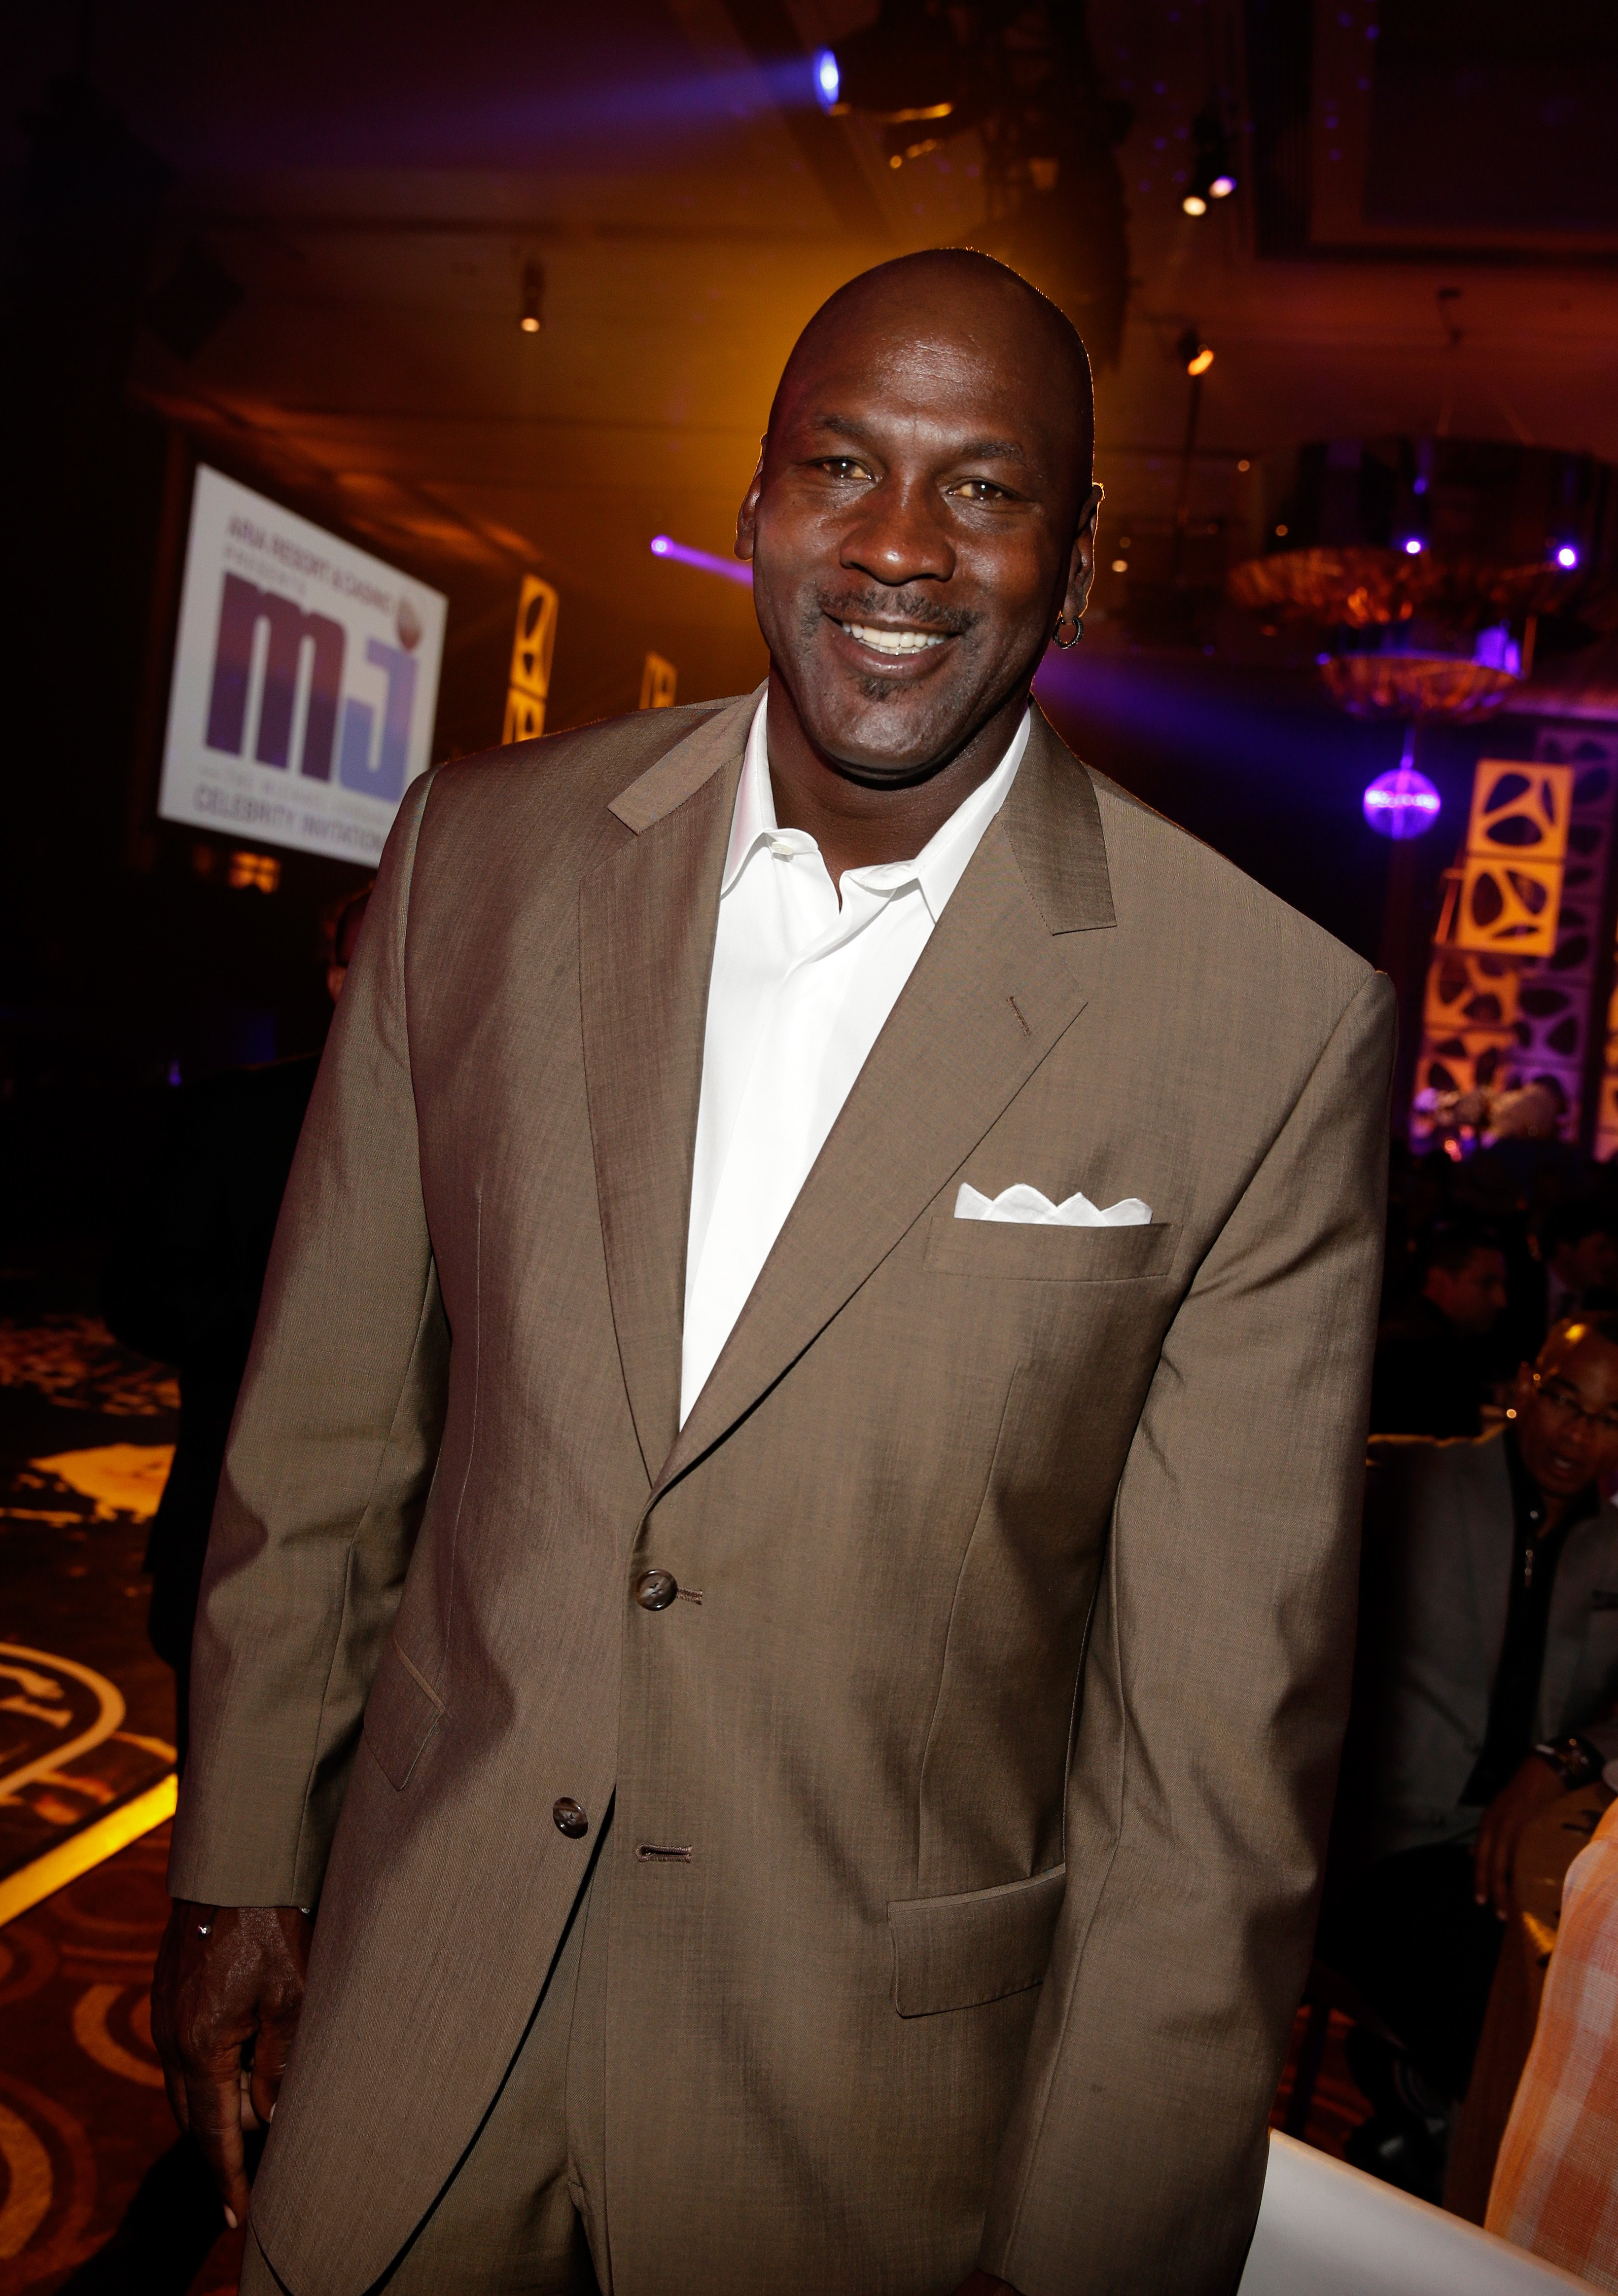 Michael Jordan attends the 13th annual Michael Jordan Celebrity Invitational gala at the ARIA Resort & Casino at CityCenter on April 4, 2014.   Photo: Getty Images